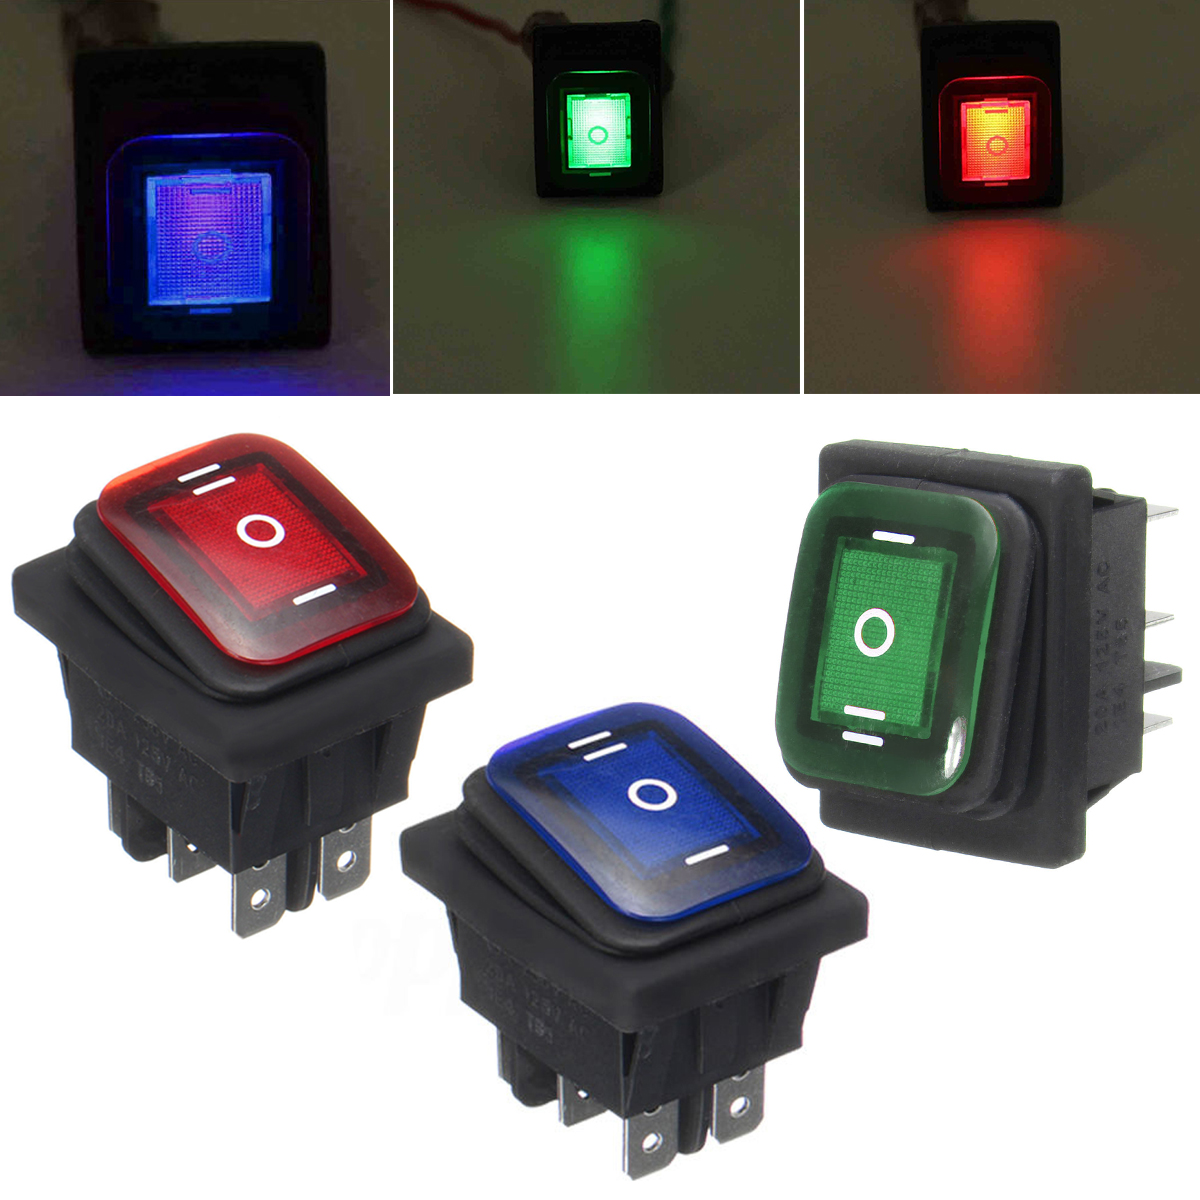 1pc/2pcs Durable Rocker Toggle Switch Mayitr On-Off-On 6 Pins 12V DC Car Boat Automobiles Waterproof LED Latching Switches on off round rocker switch led illuminated car dashboard dash boat van 12v